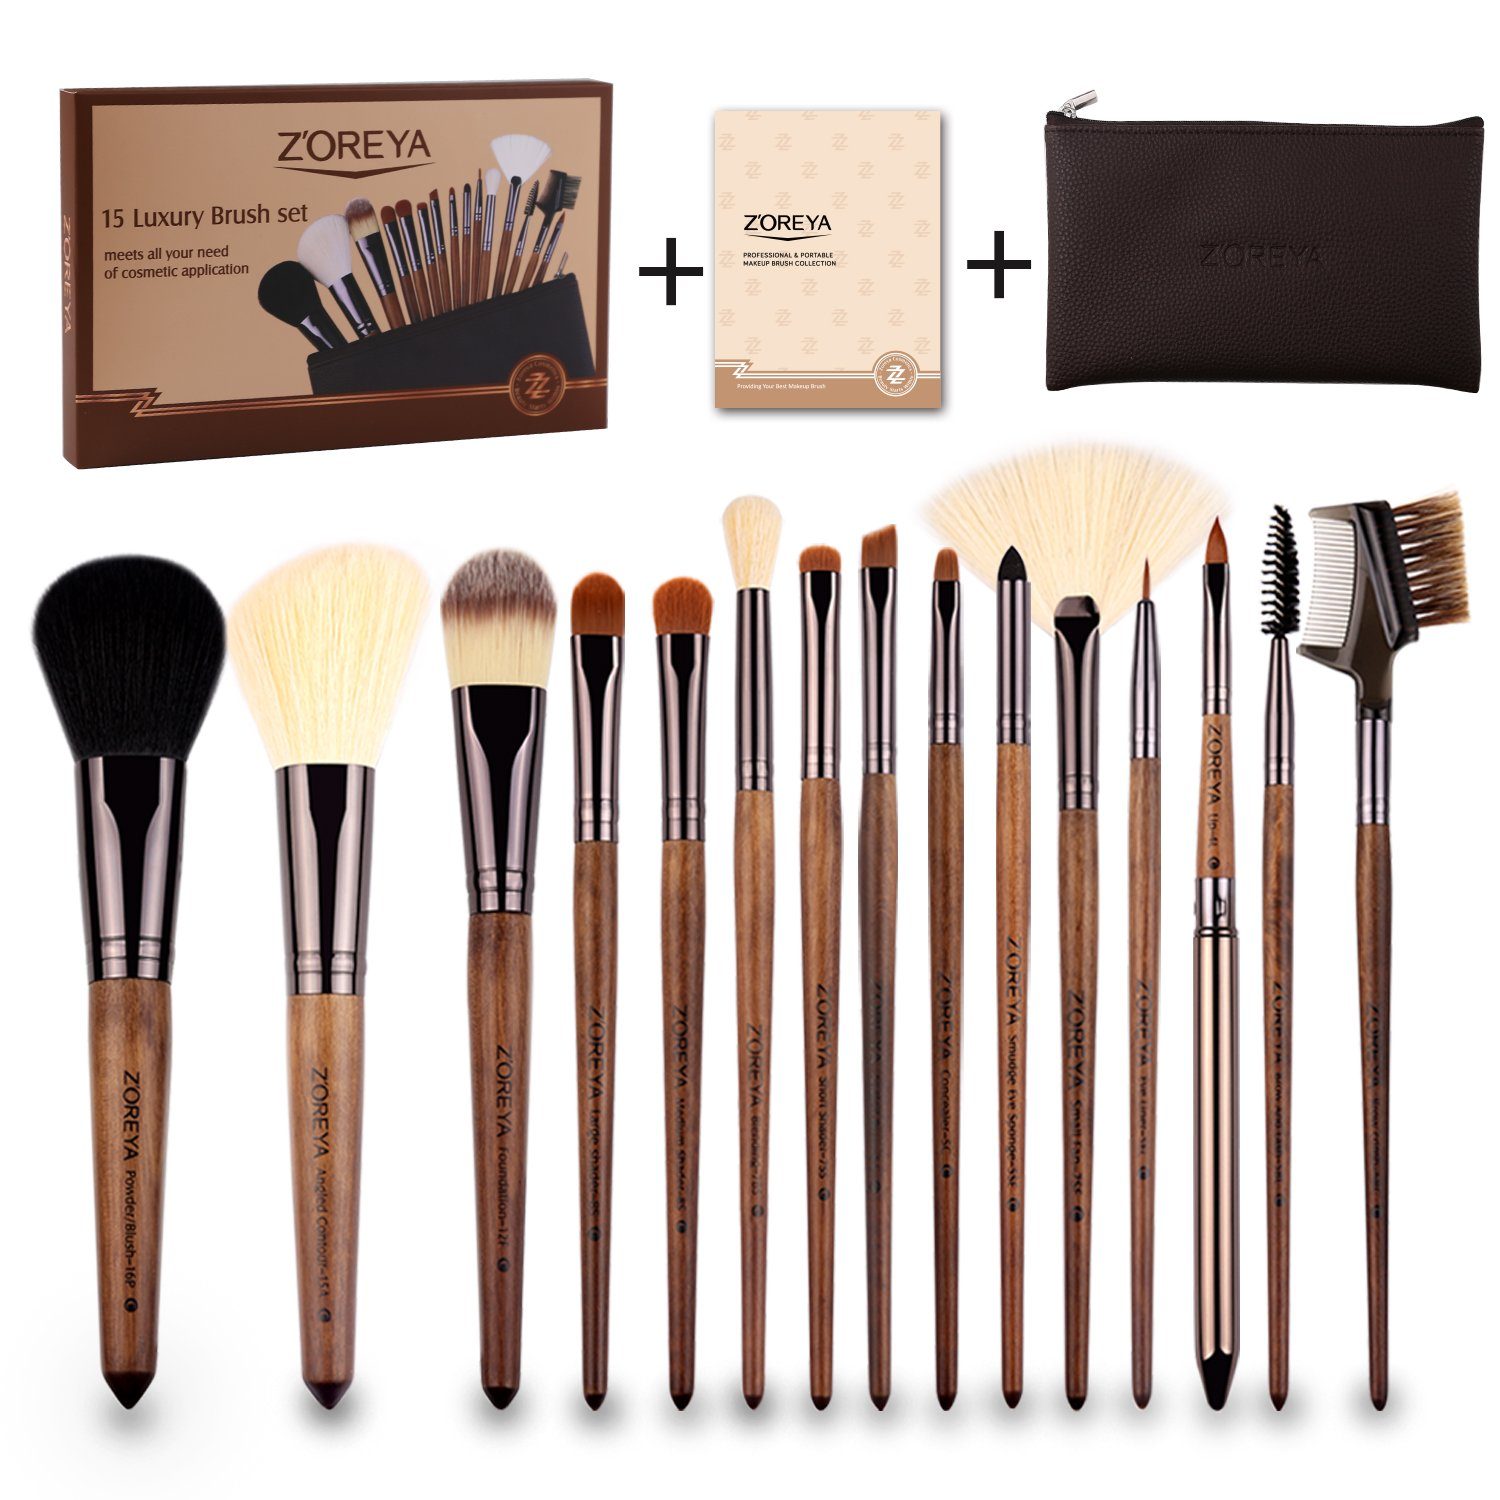 Amazoncom Zoreya(Tm) Makeup Brushes 15Pc High End Real Walnut Handle